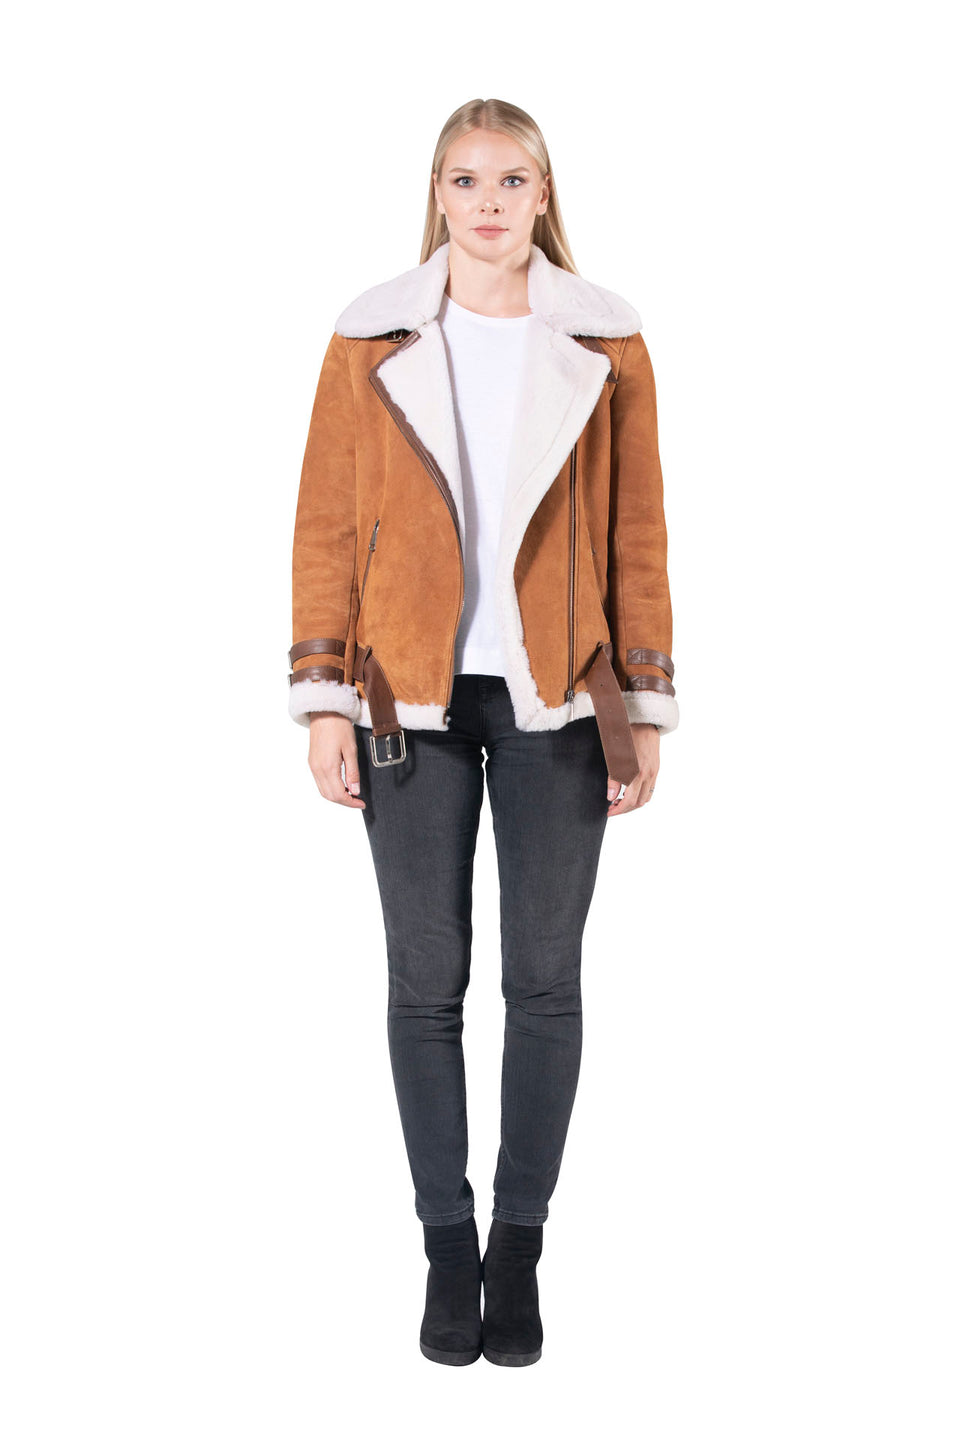 Victoria - Women's Handcrafted Premium Shearling Jacket 2020